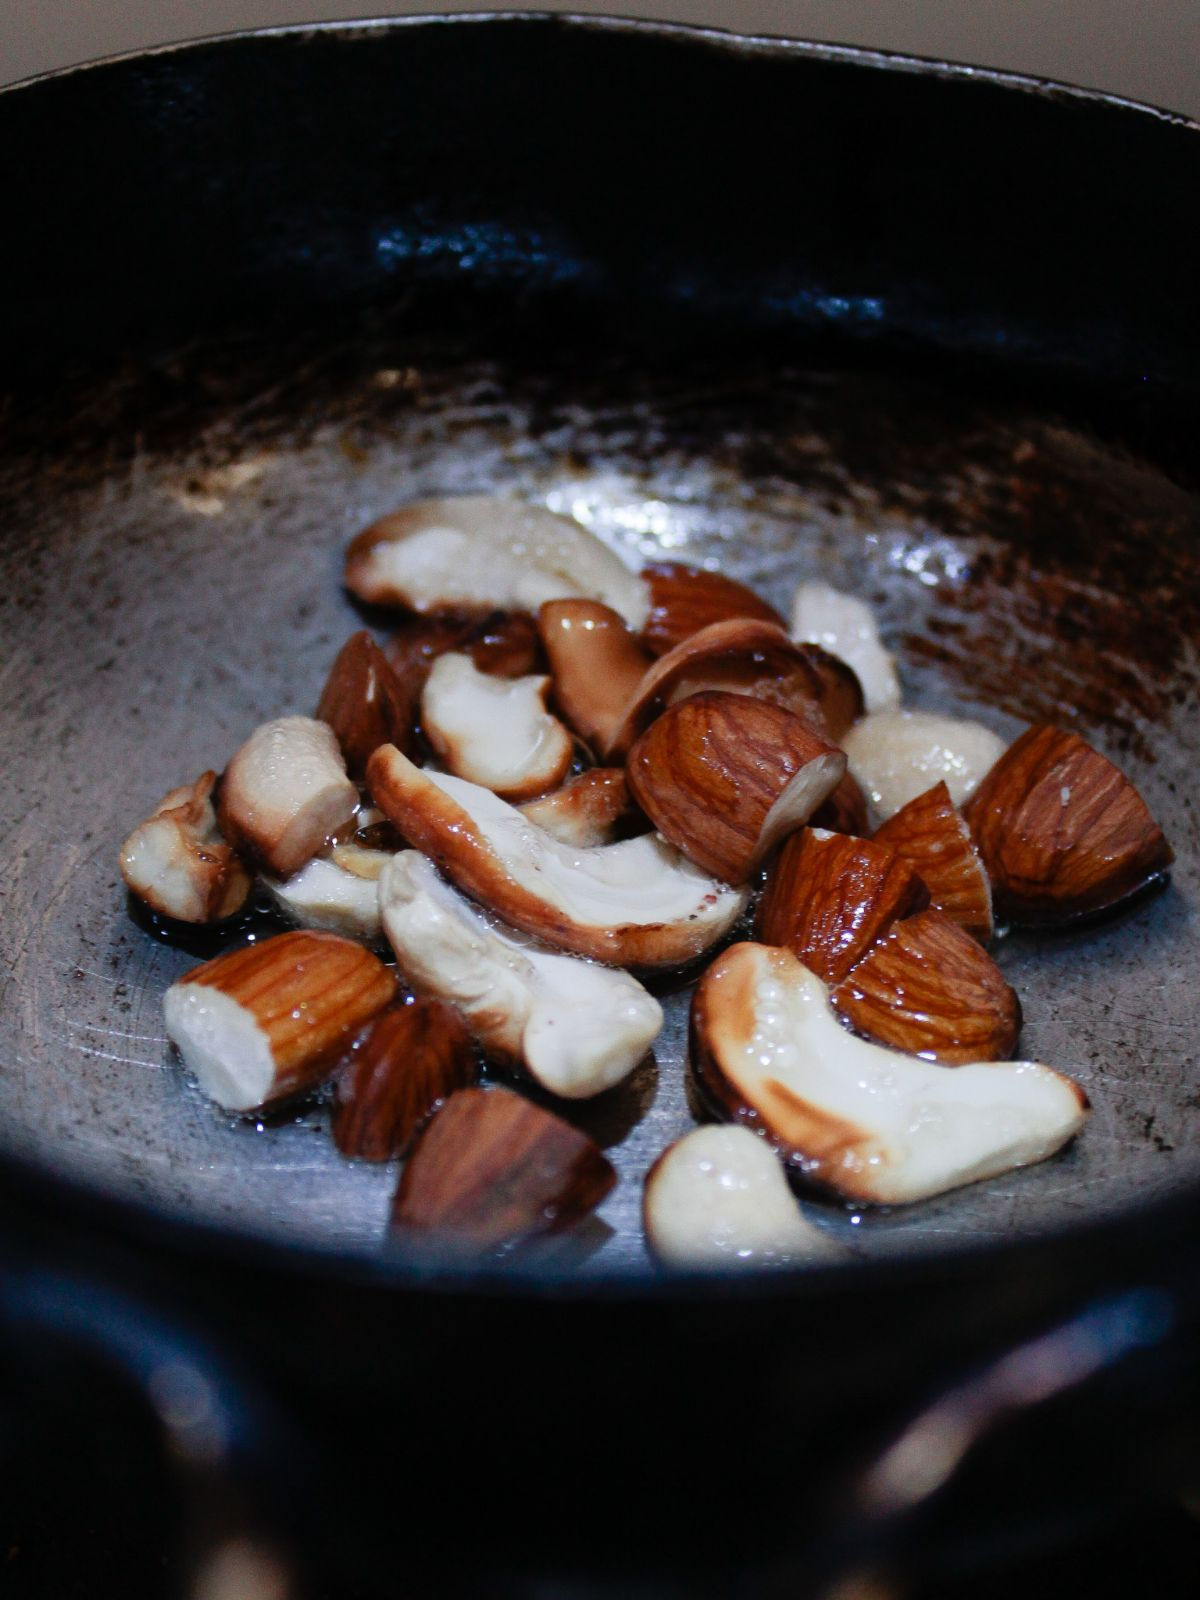 Large skillet over fire with cashews and almonds roasting